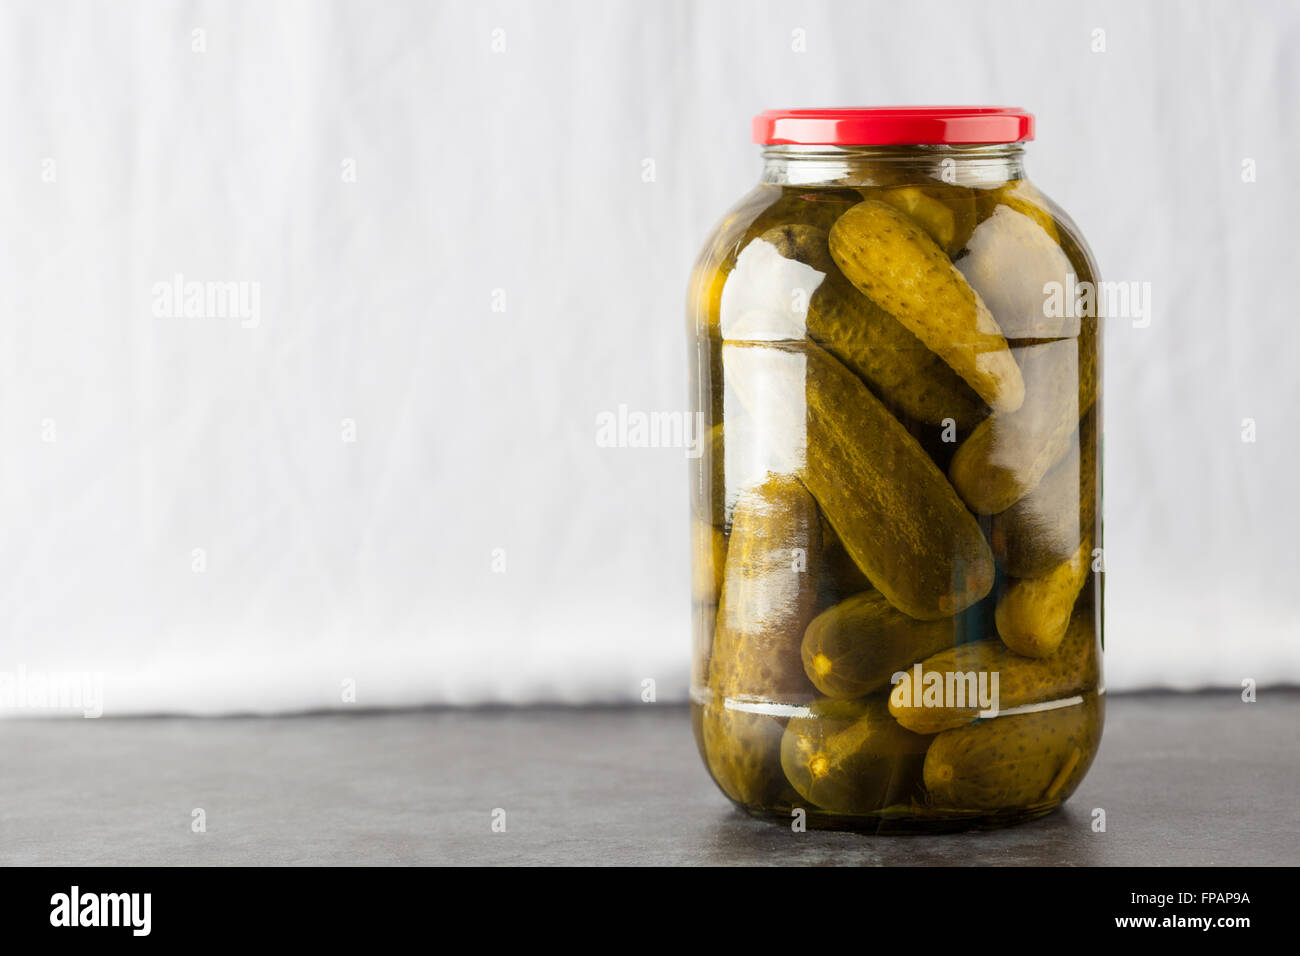 Big jar with dill pickles on white background with copy space - Stock Image